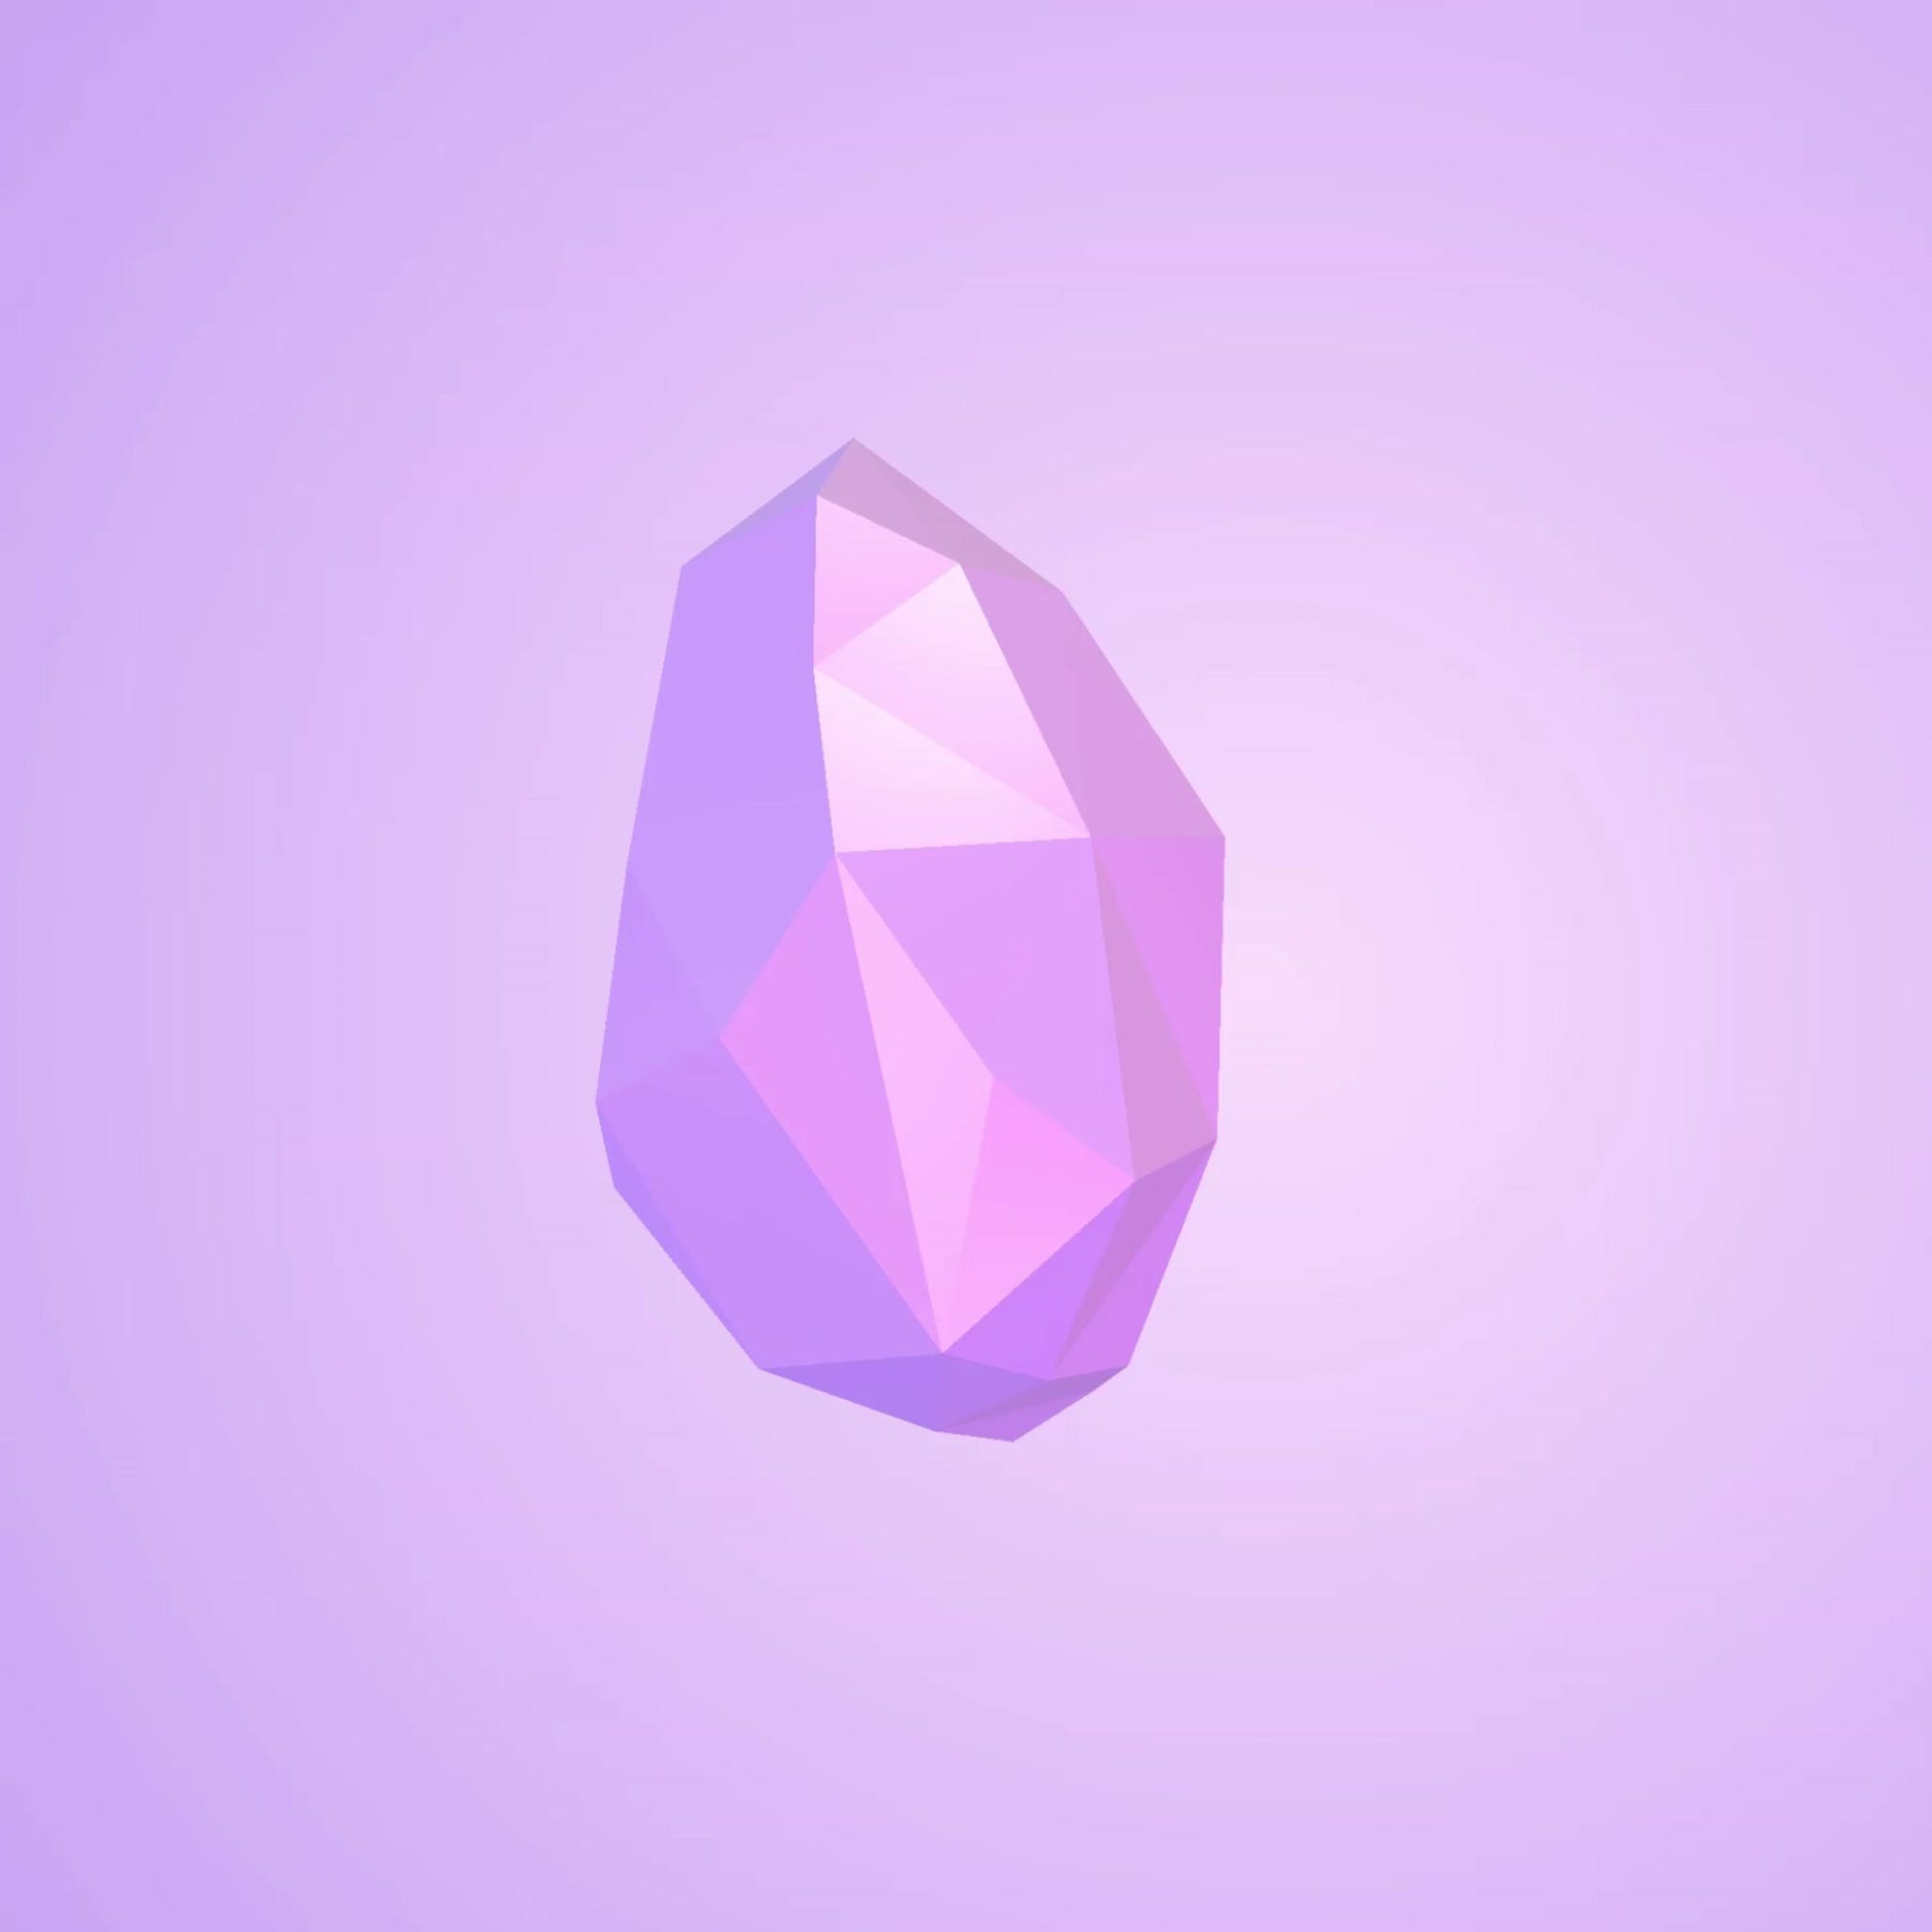 Pink 3d gemstone floating and rotating